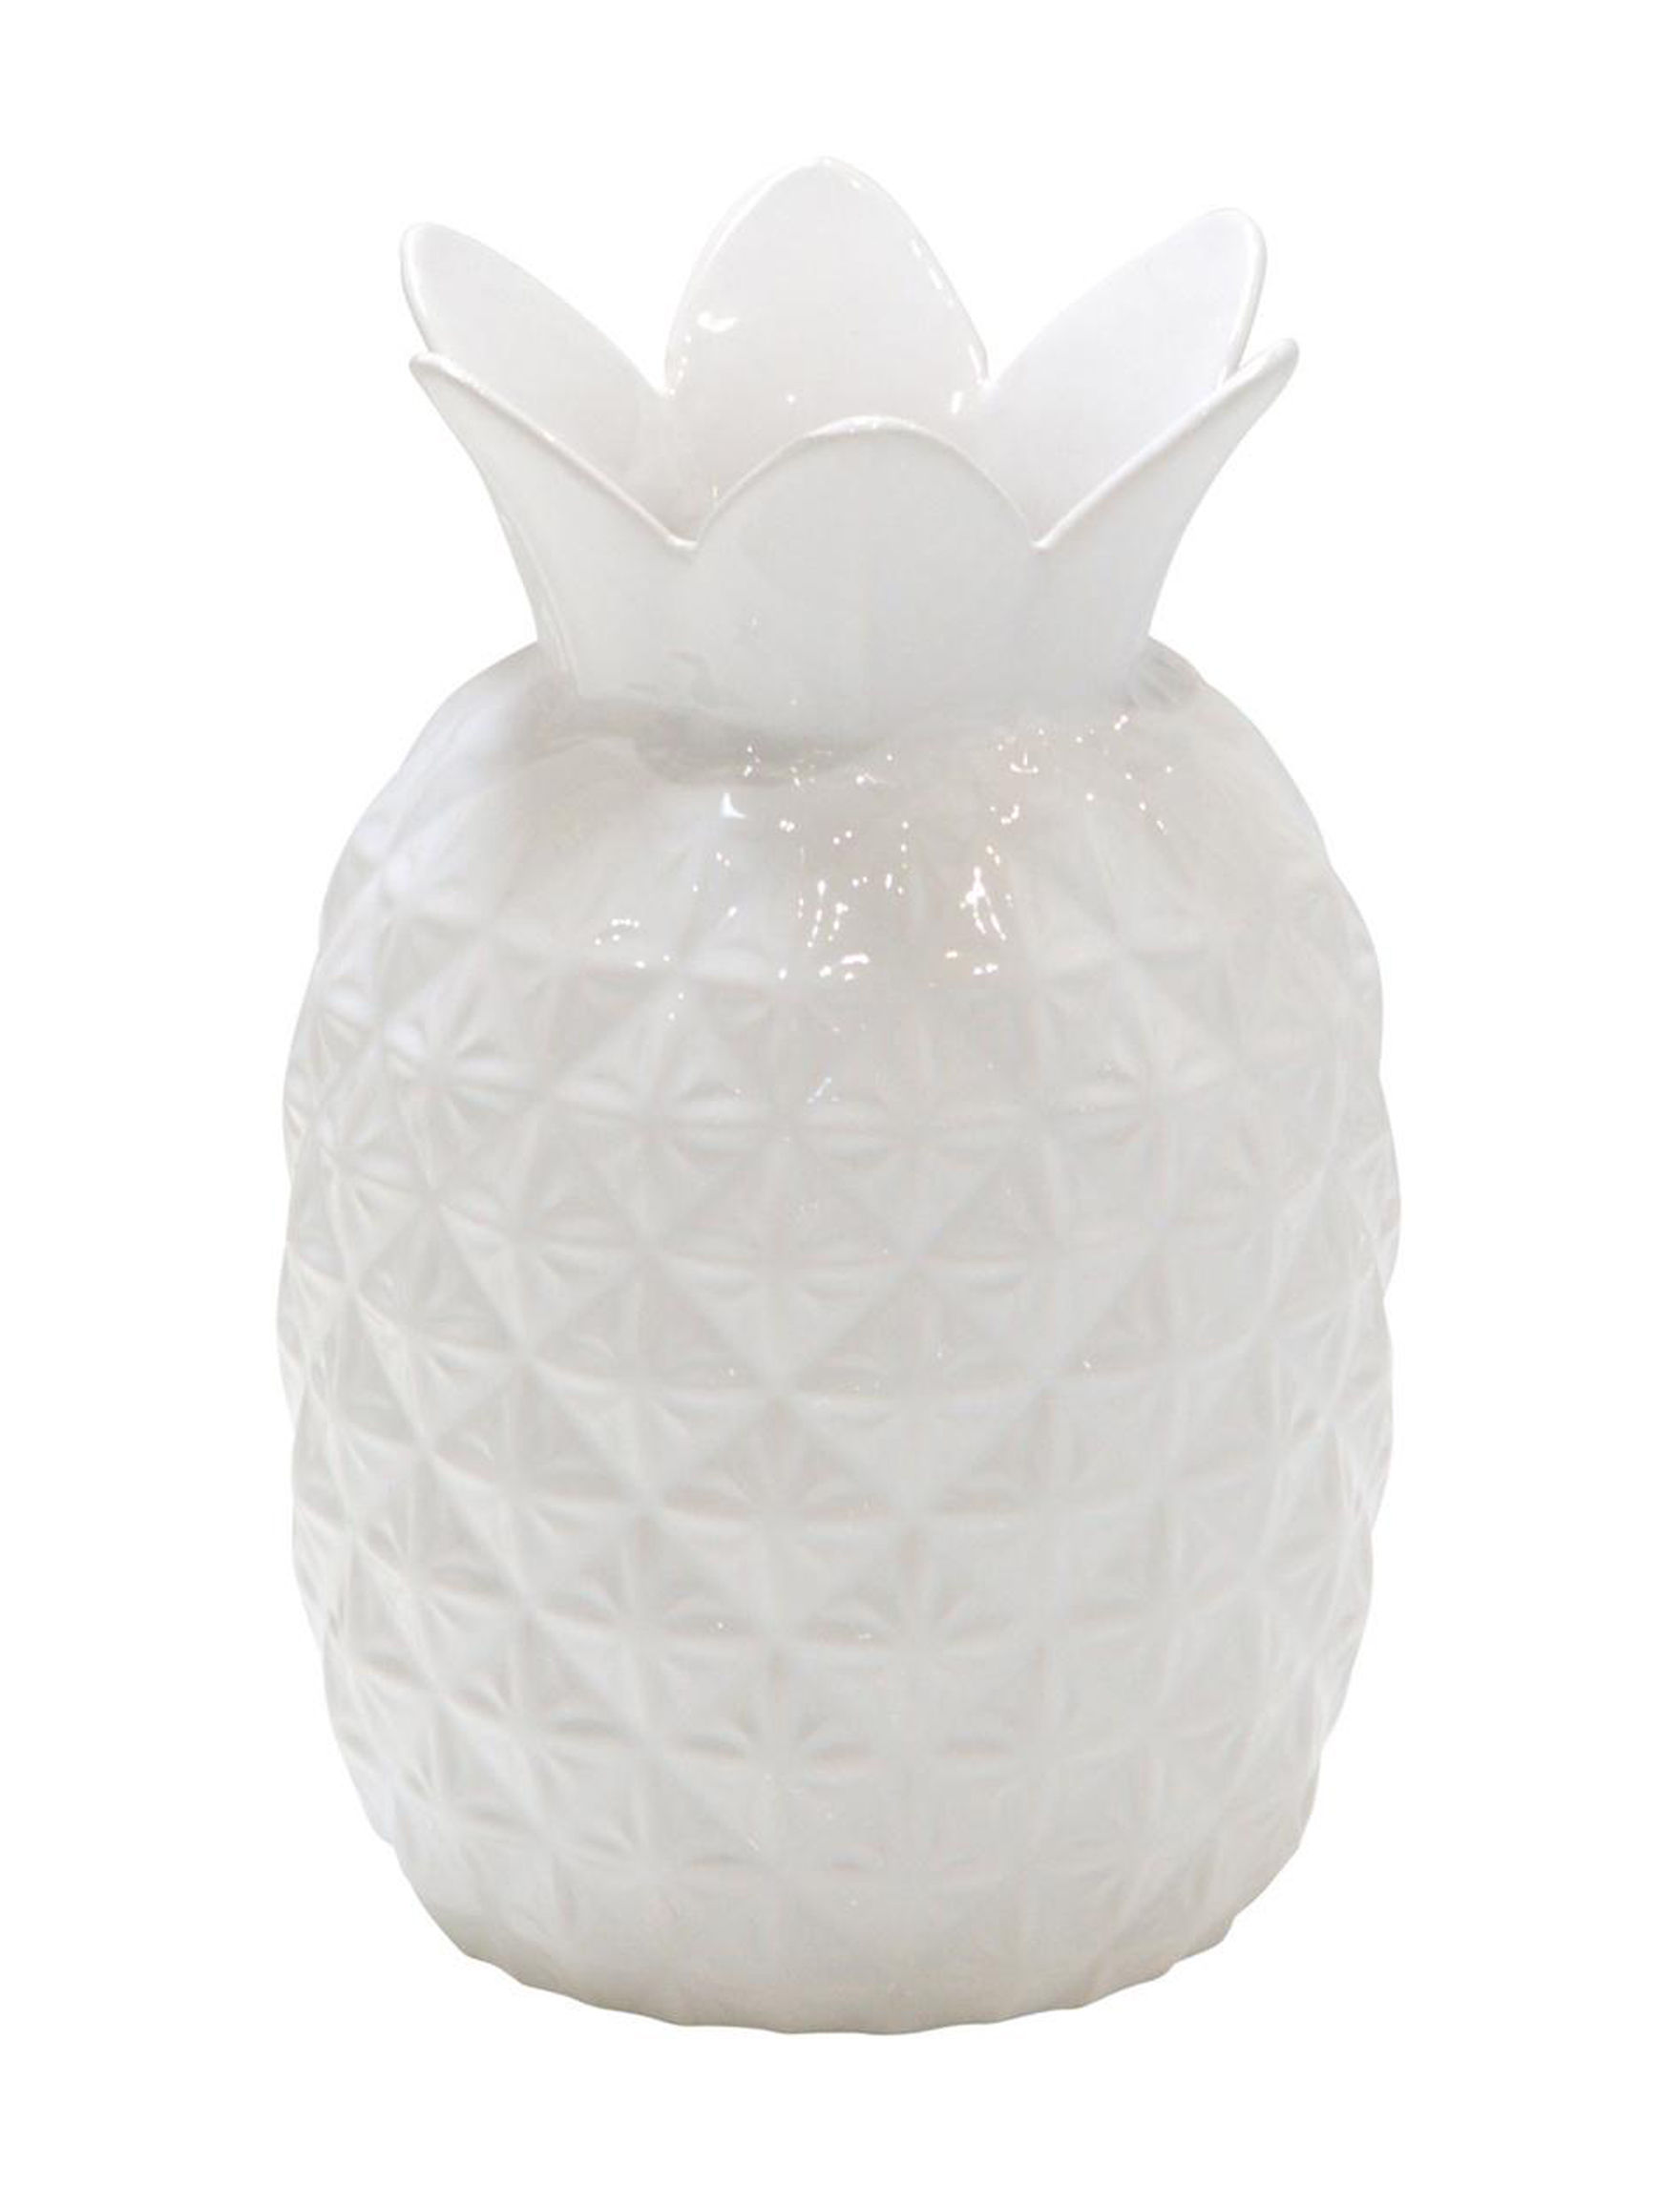 Home Essentials White Decorative Objects Vases & Decorative Bowls Home Accents